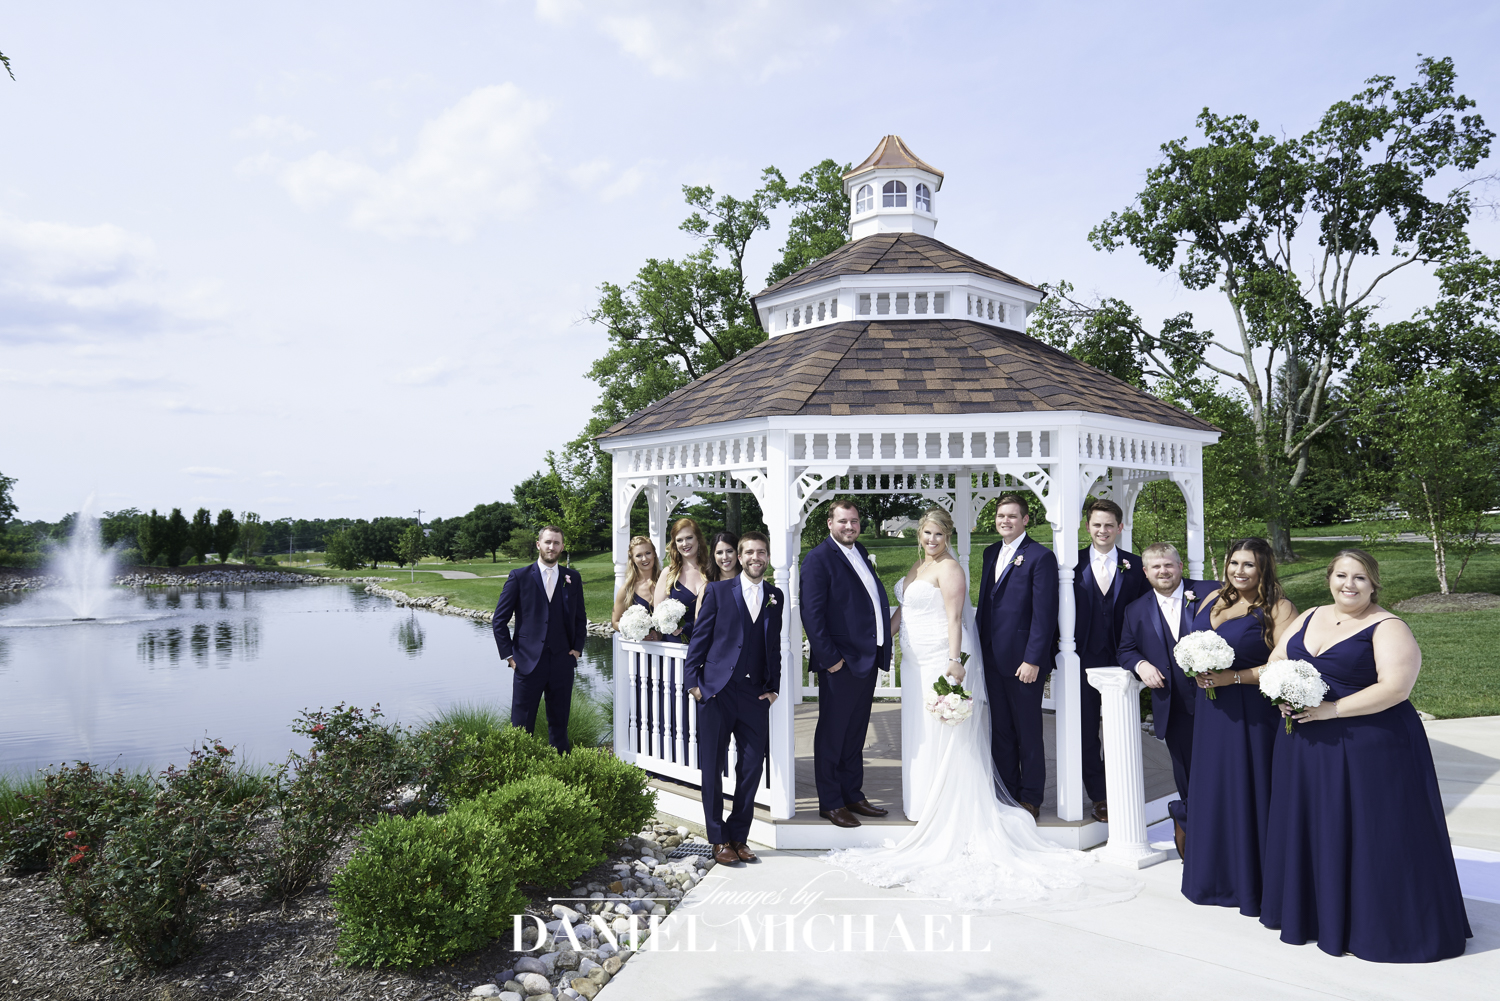 Oasis Gazebo Wedding Photography Cincinnati